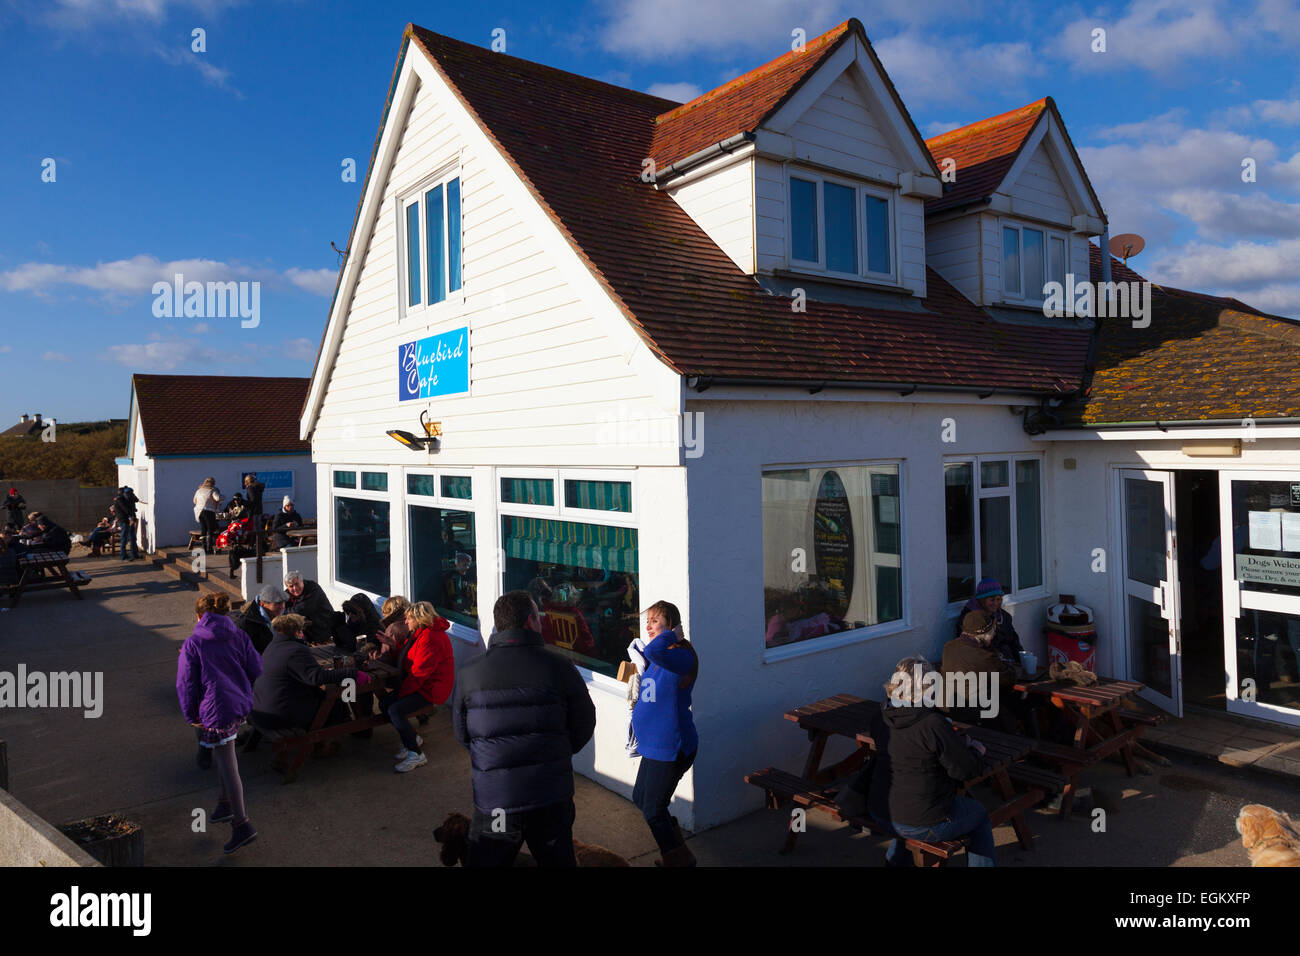 Customers sitting outside the Bluebird beach cafe on Ferring beach in the winter sunshine Stock Photo